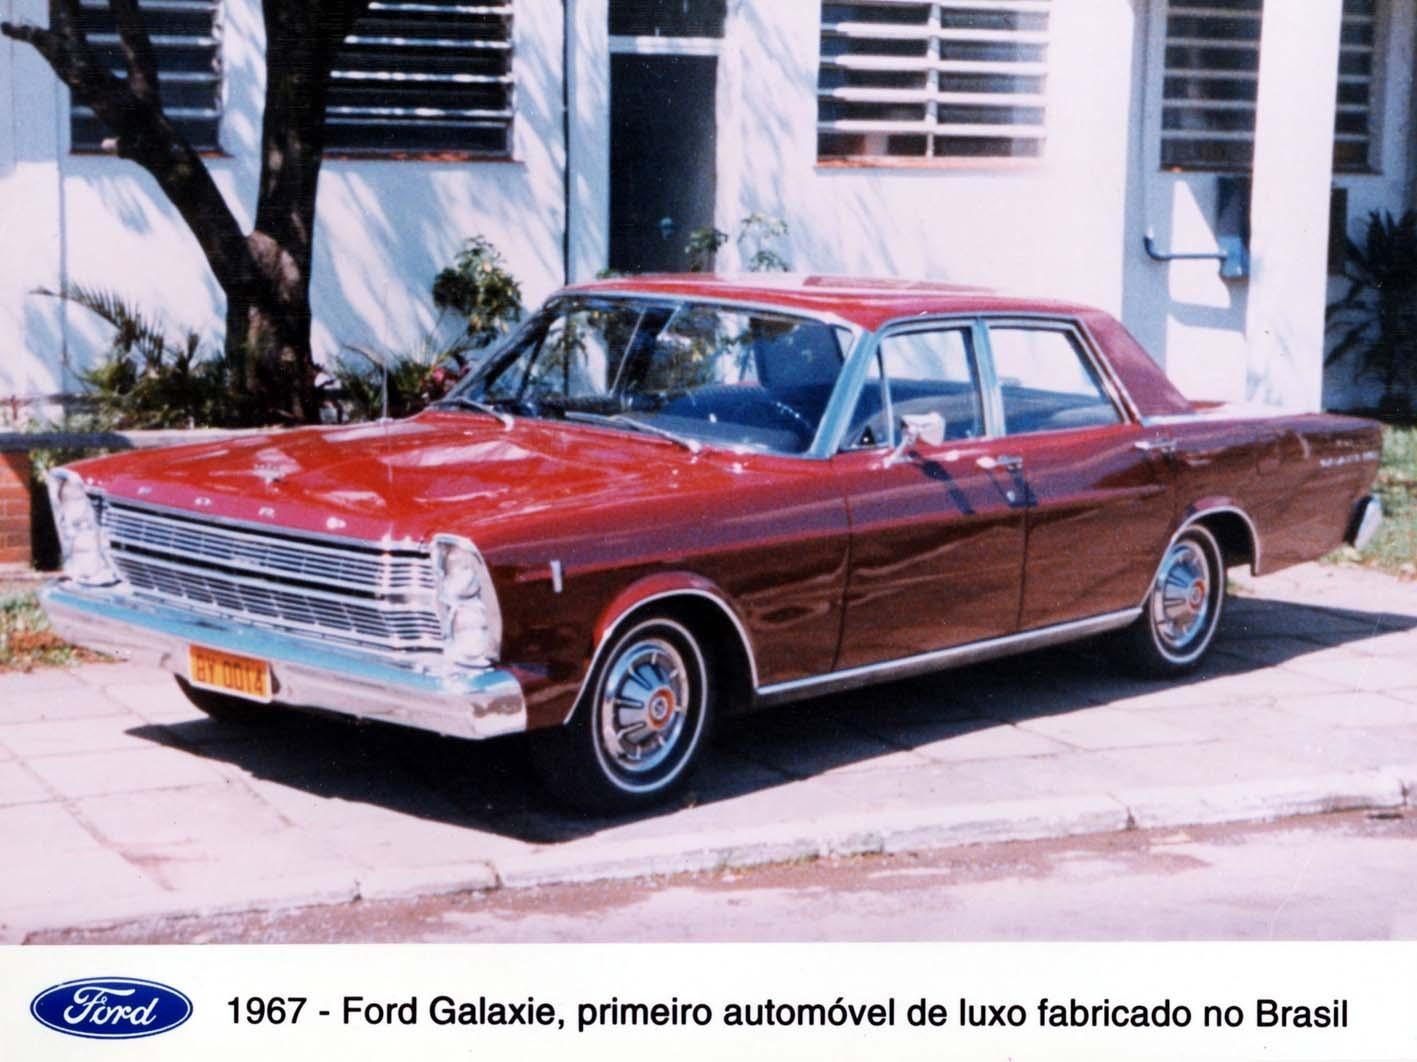 Ford foto antiga do 1967 ford galaxie primeiro automovel de luxo